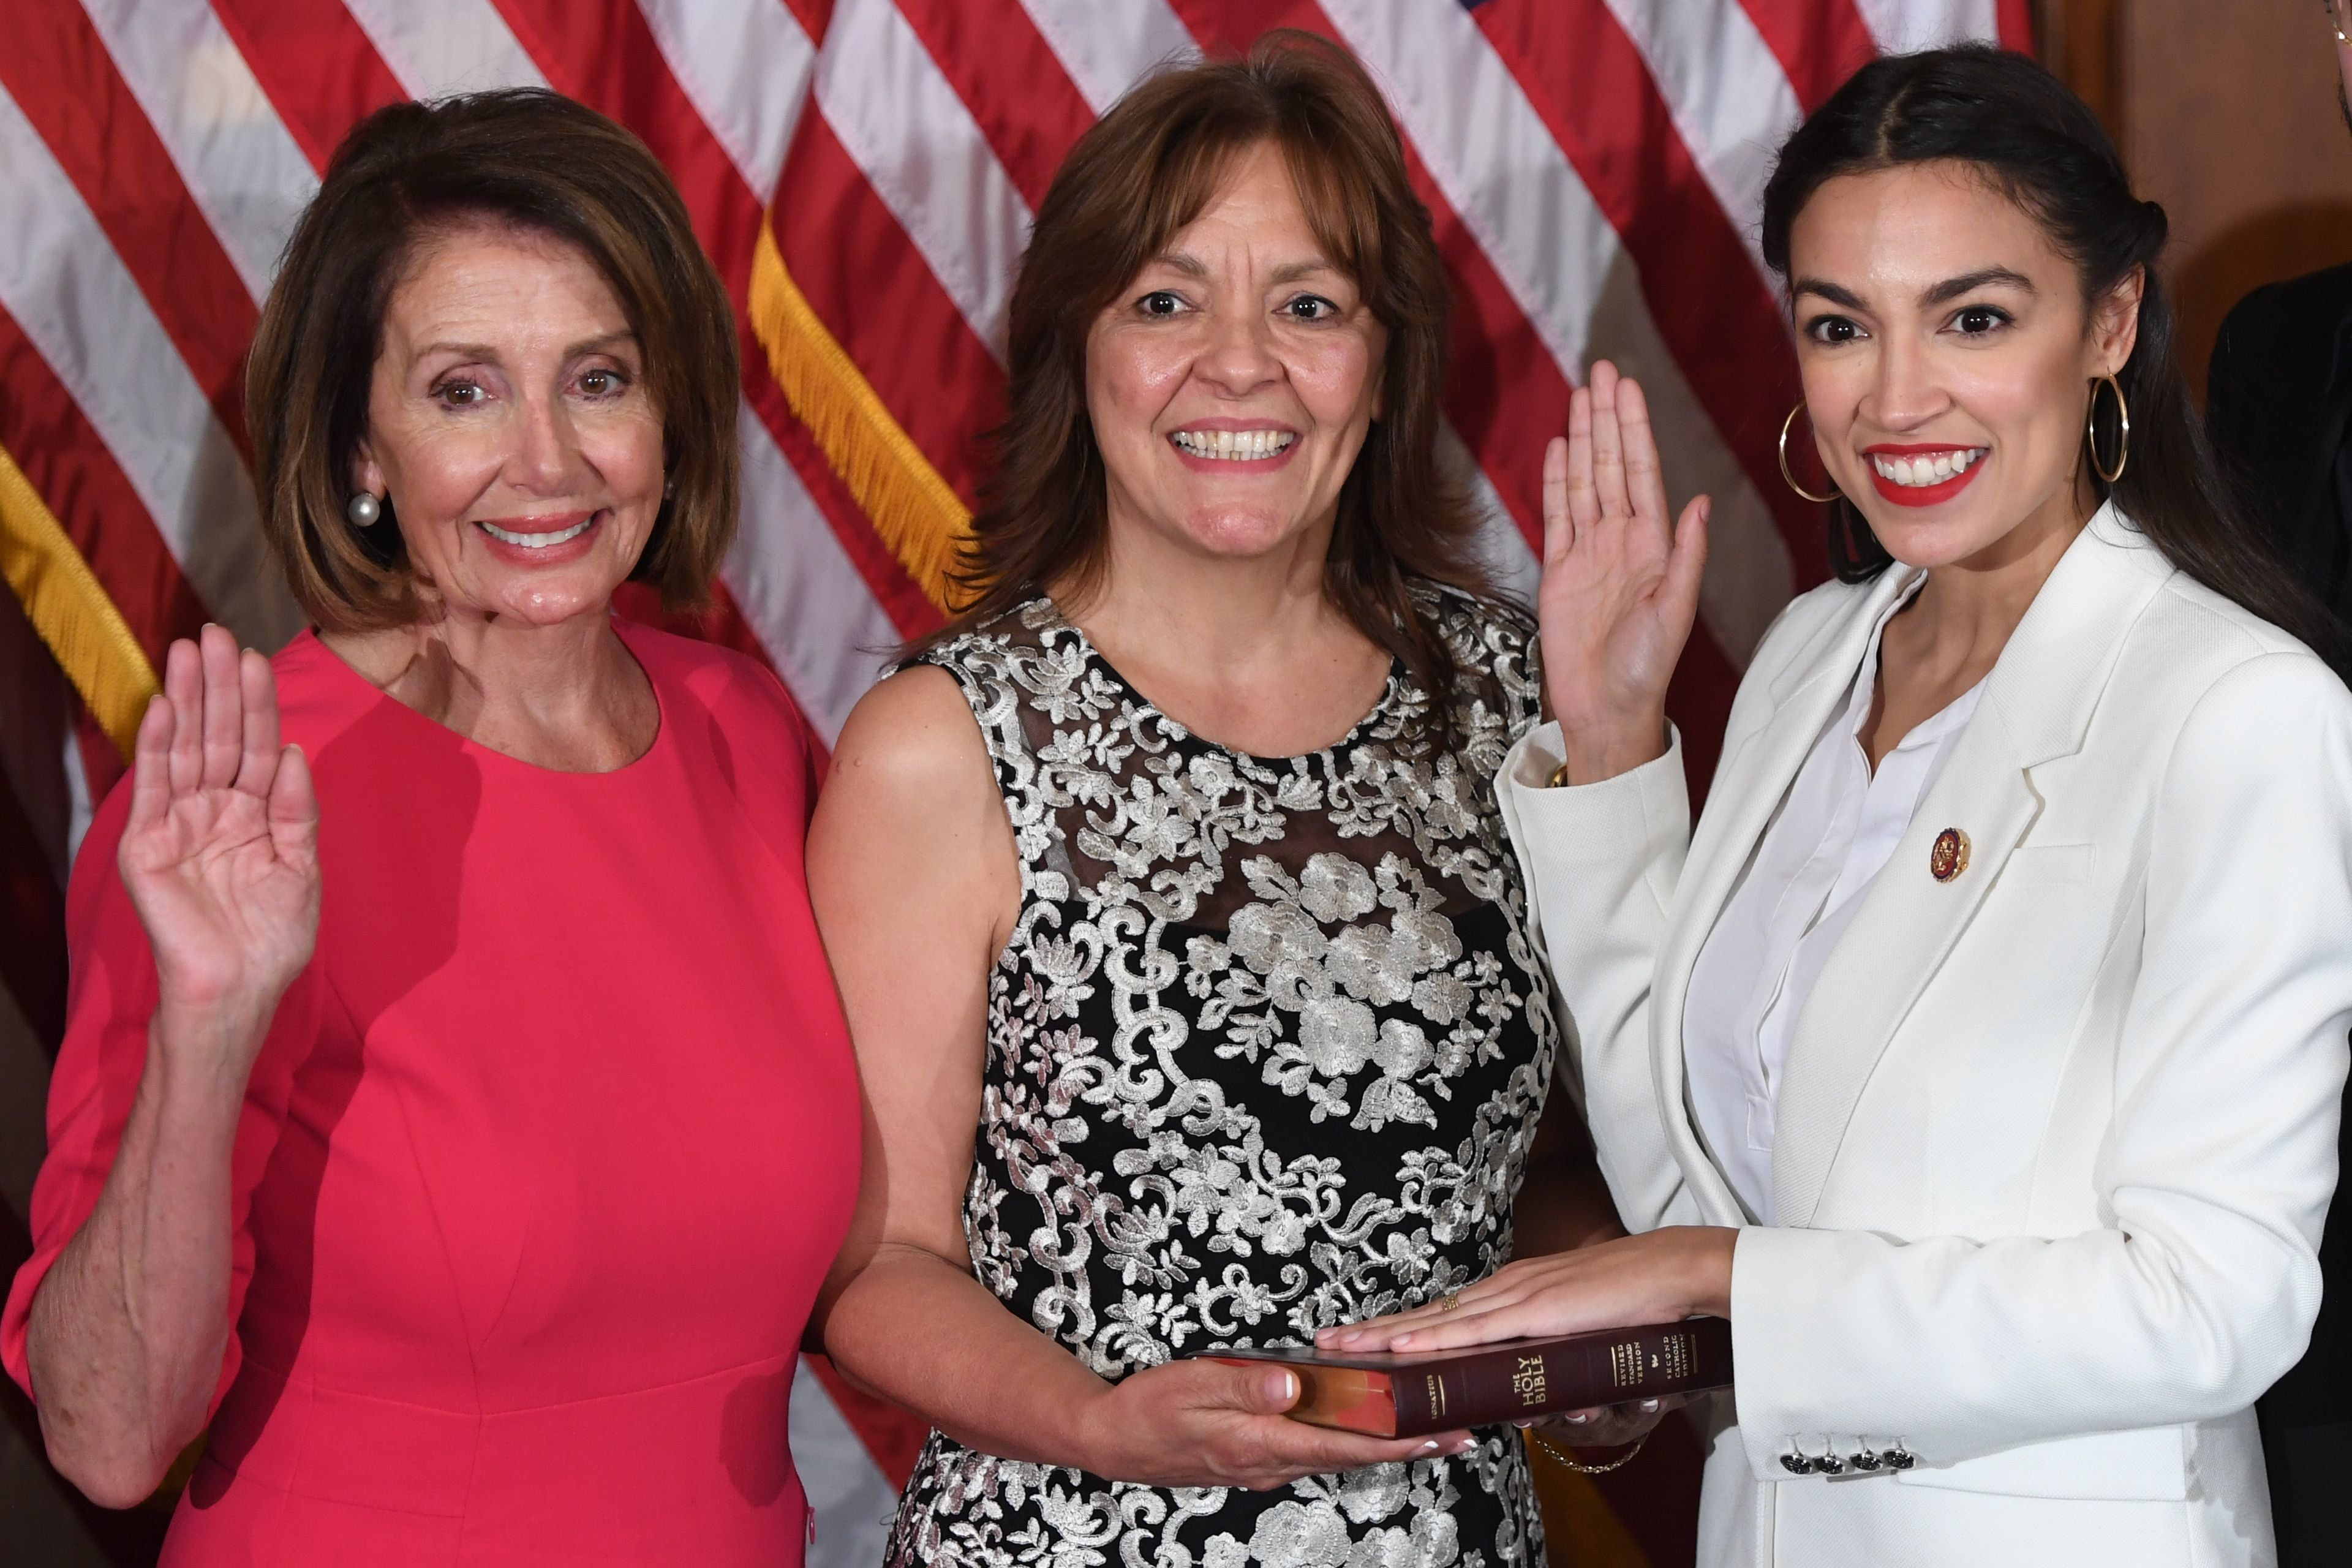 Speaker of the House Nancy Pelosi (L) performs a ceremonial swearing-in for US House Representative Alexandria Ocasio-Cortez (R), D-NY, at the start of the 116th Congress at the US Capitol in Washington, DC, January 3, 2019. (Photo by SAUL LOEB / AFP)        (Photo credit should read SAUL LOEB/AFP/Getty Images)